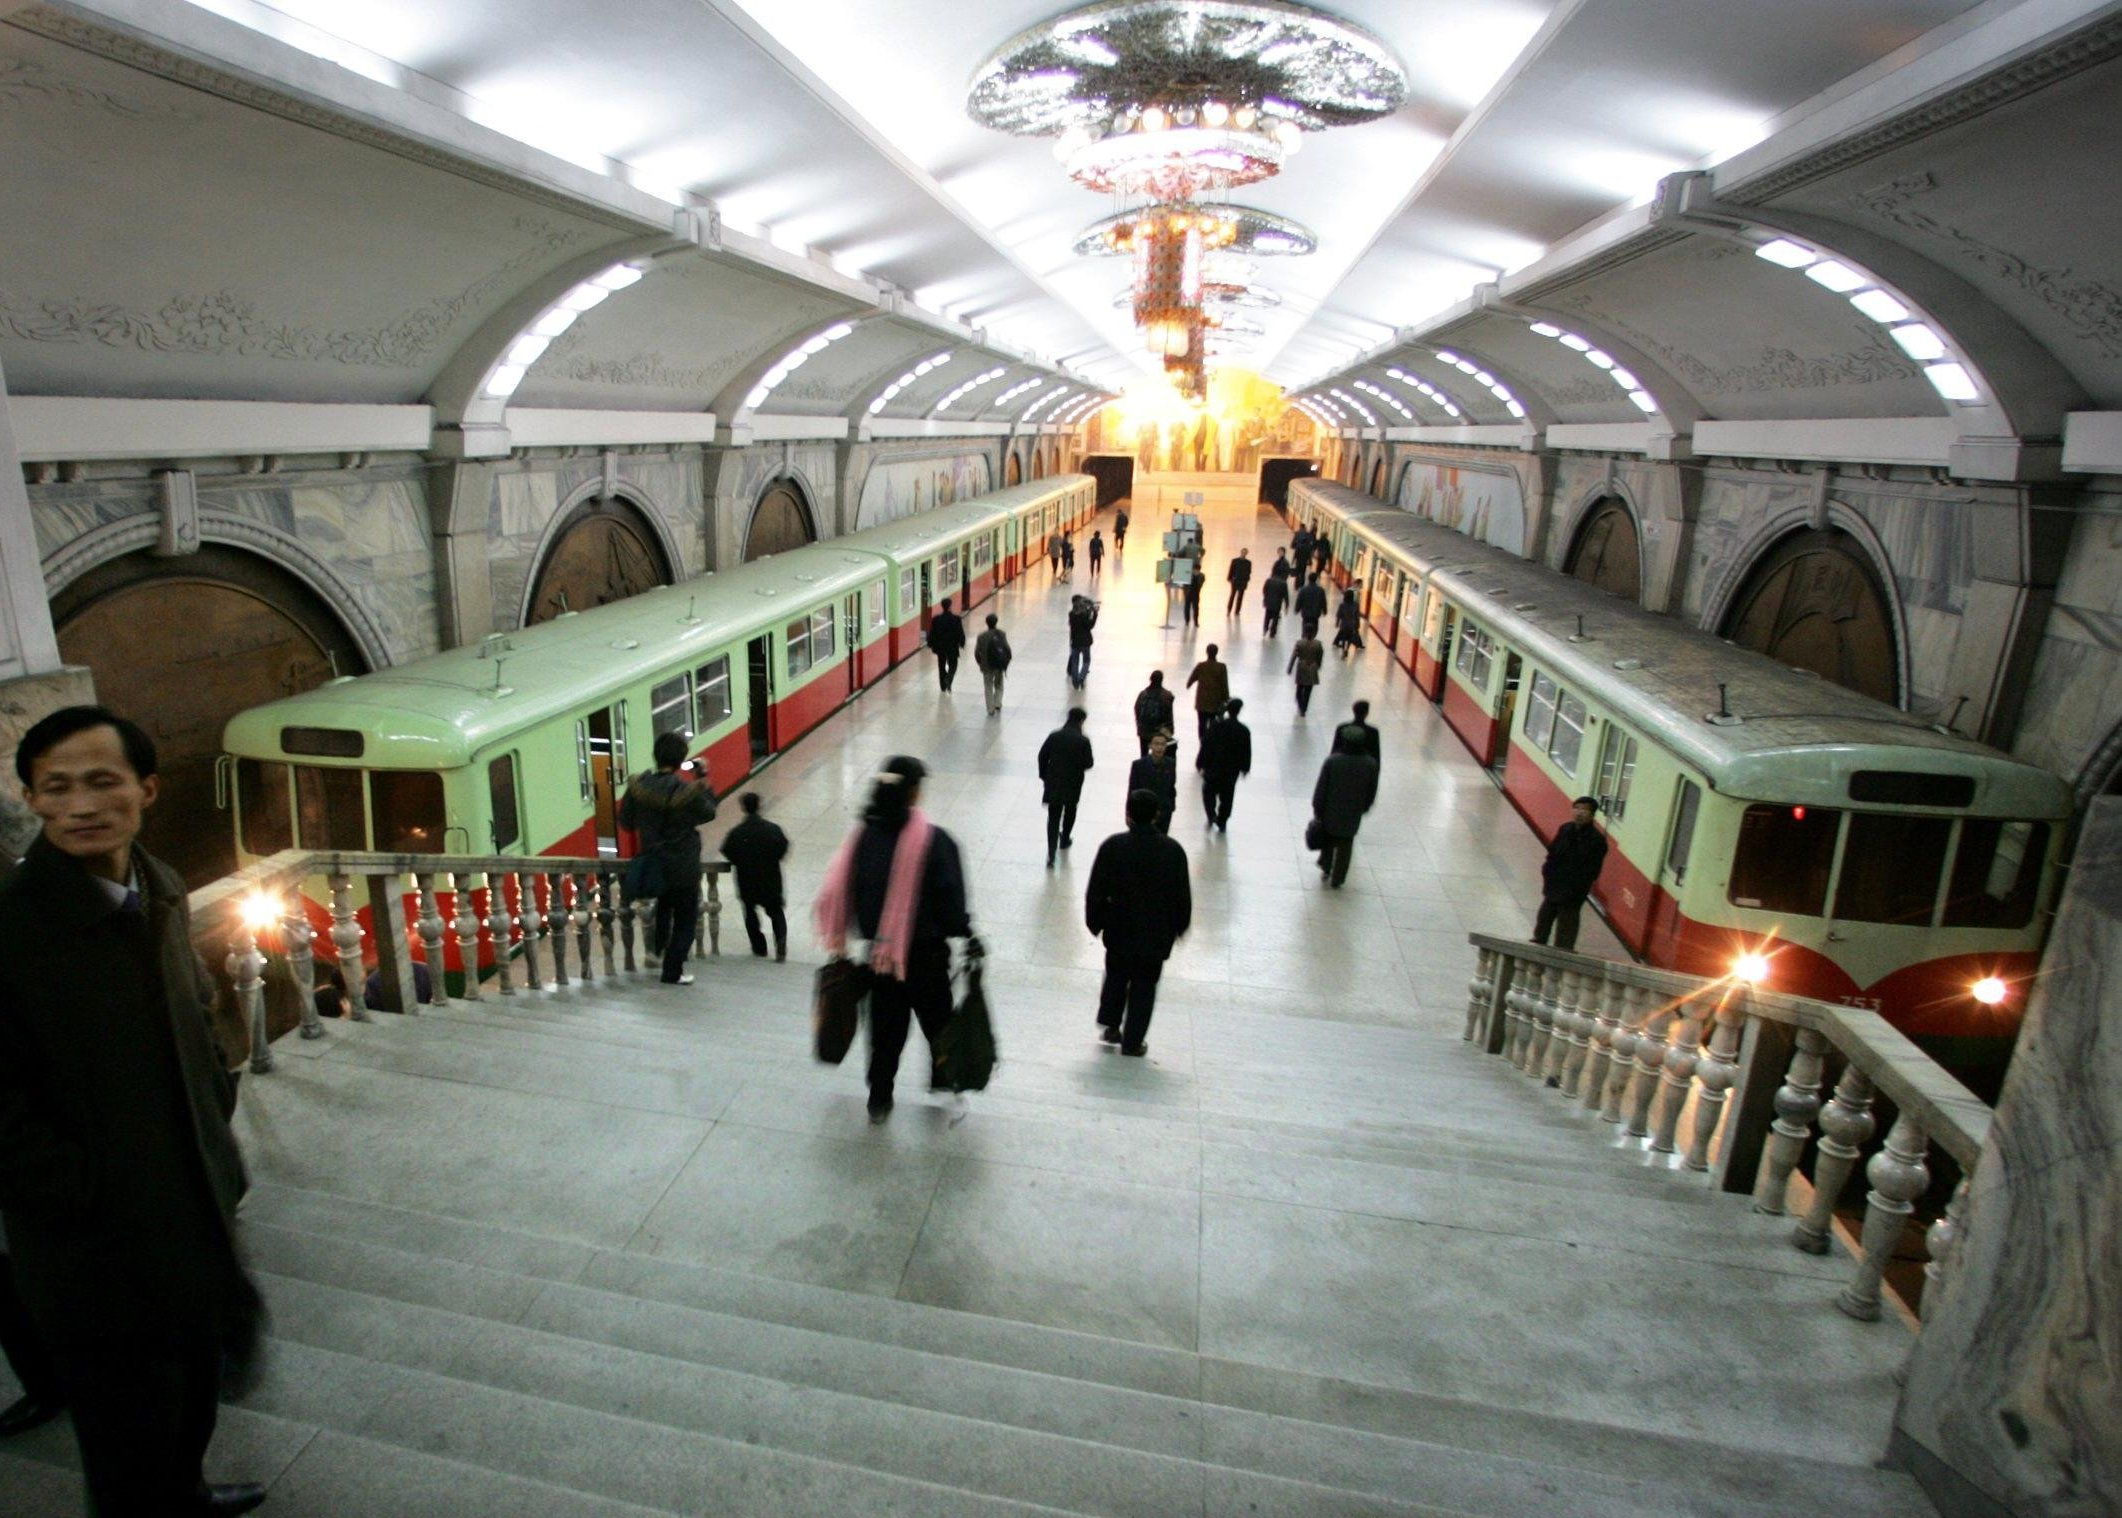 Pedestrians walk through Puhung (meaning rehabilitation) subway station in the North Korean capital of Pyongyang (File)